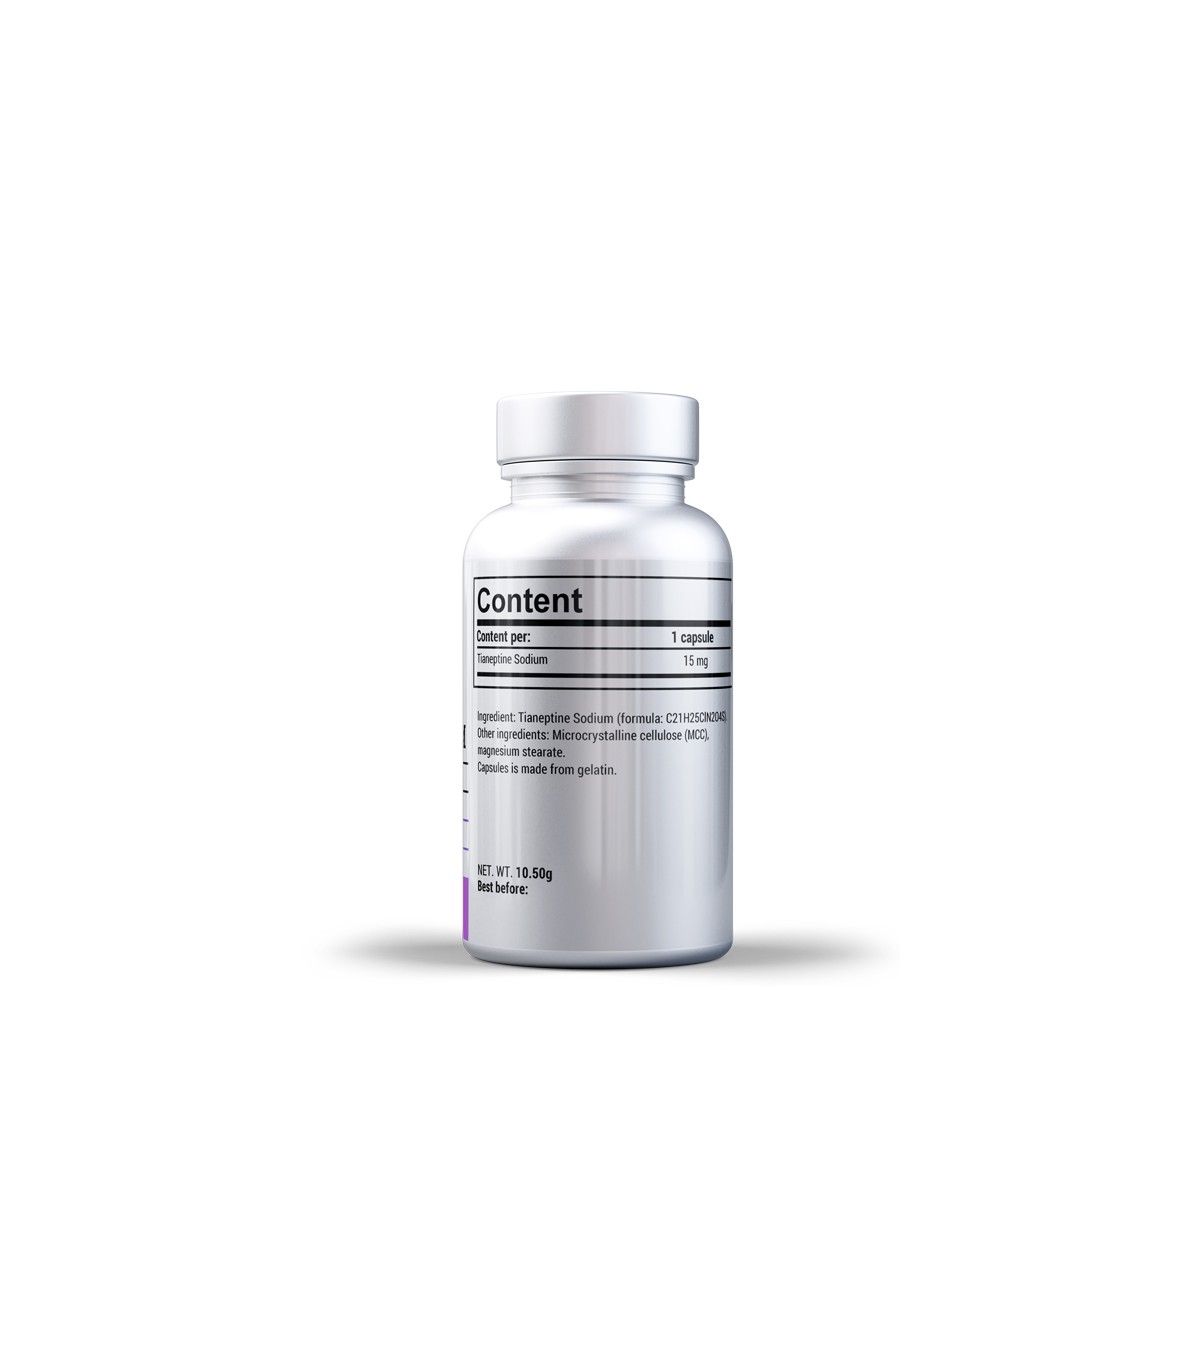 Tianeptine Sodium | ReachGenius - Nootropics Europe